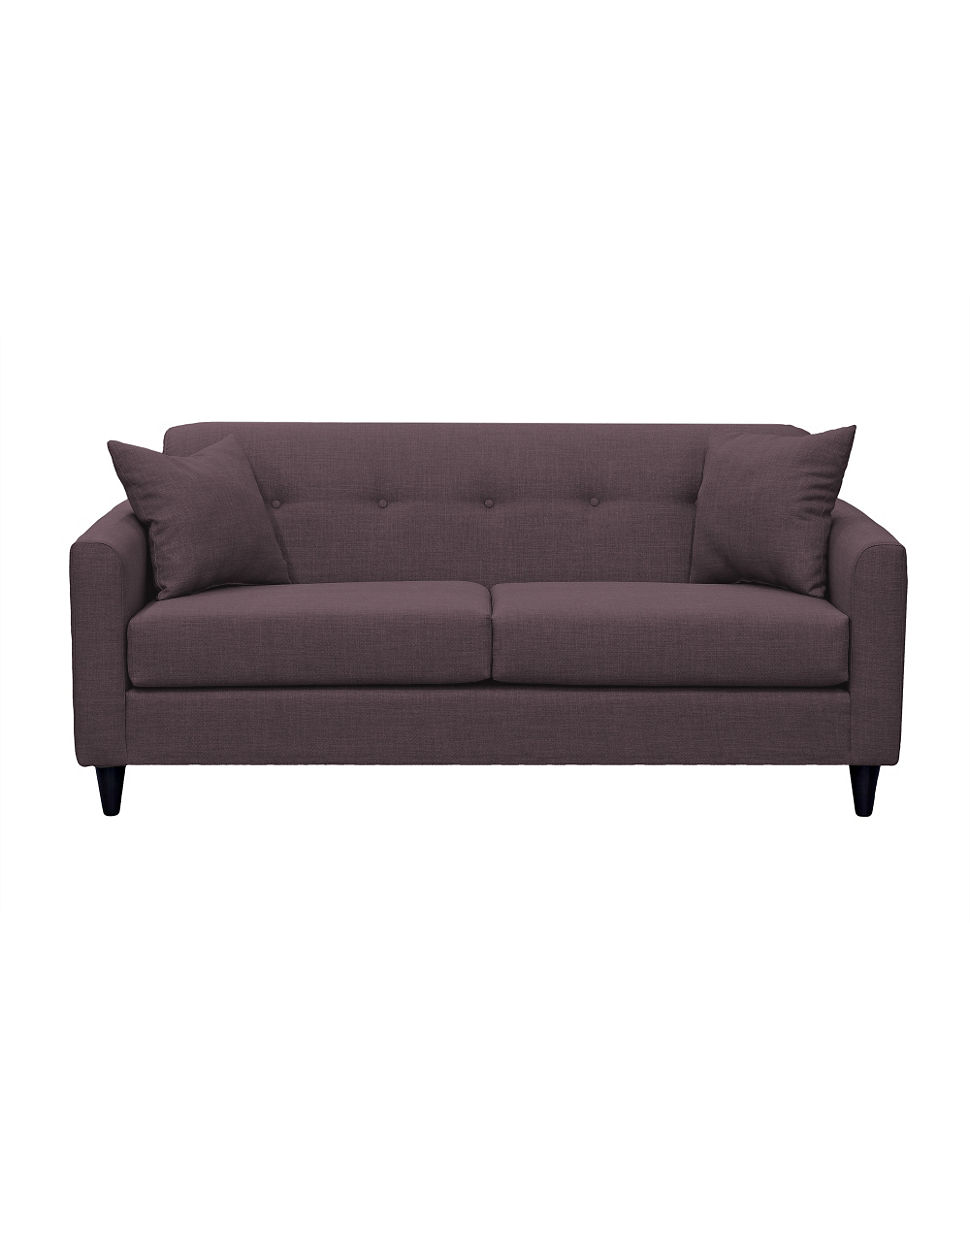 fabric sectional sharpen benjamin sofas wid hei living sectionals op room furniture thomasville